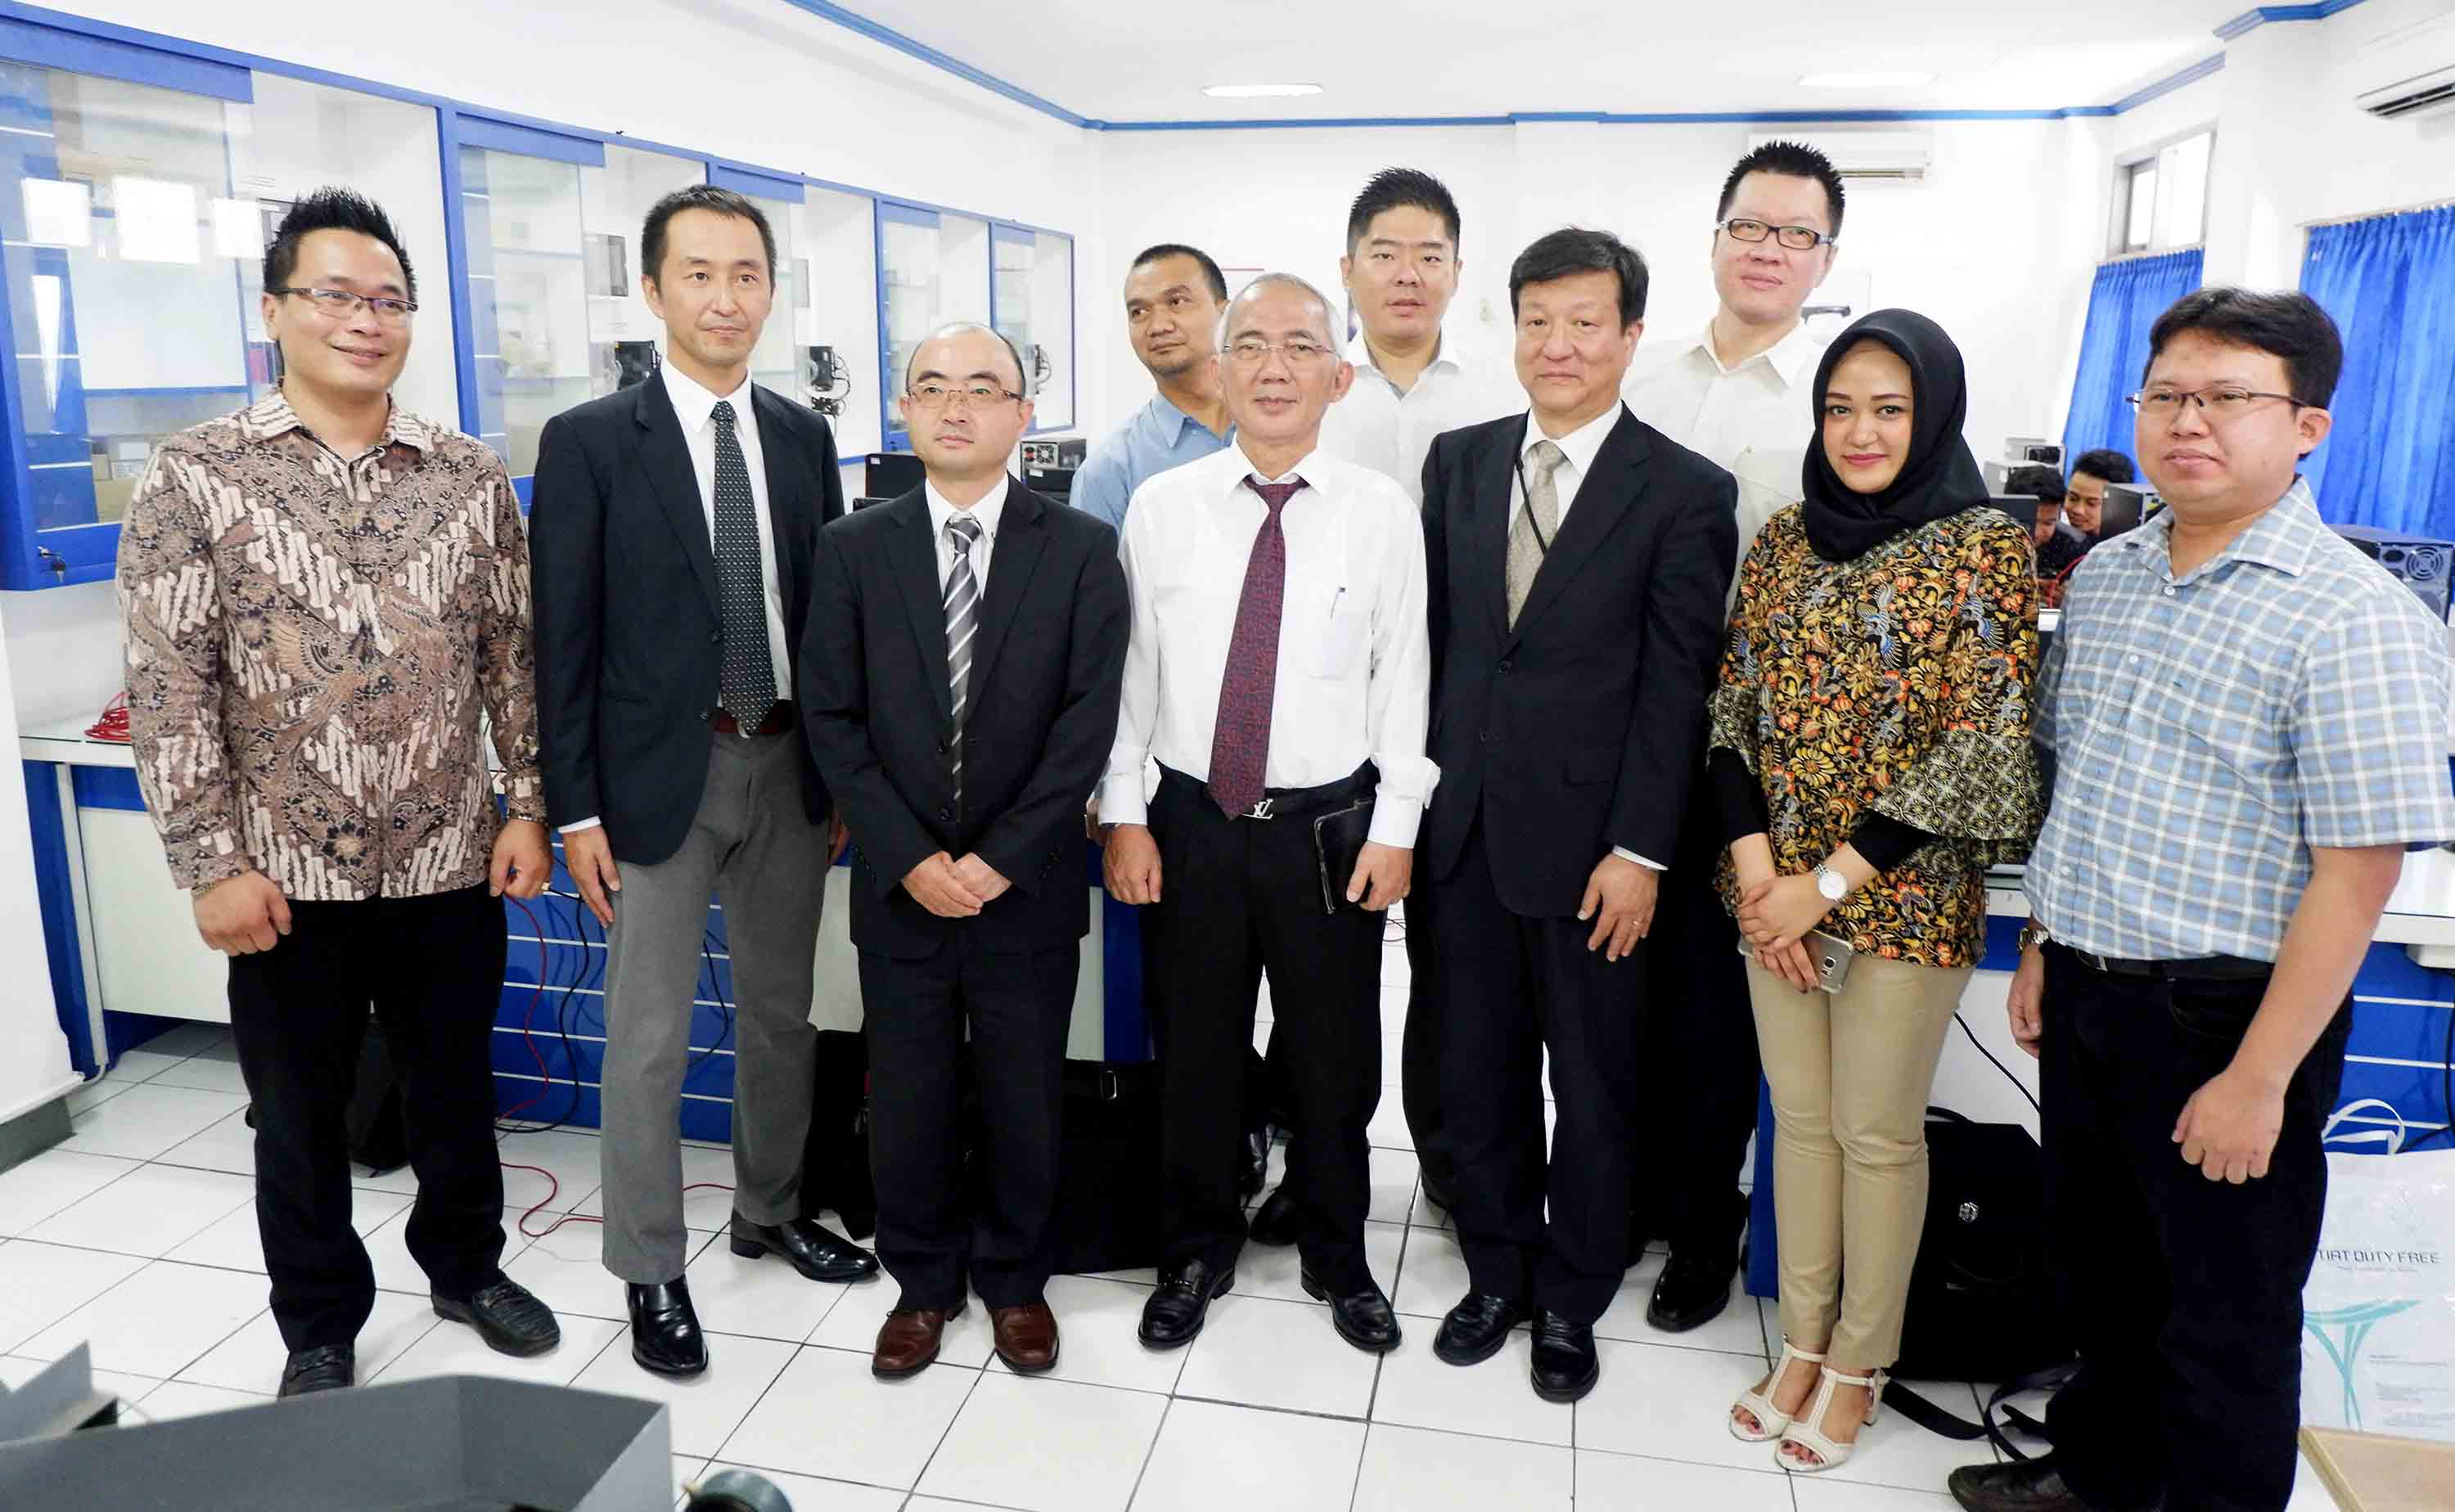 UDINUS INAUGURATED MITSUBISHI TRAINING CENTER